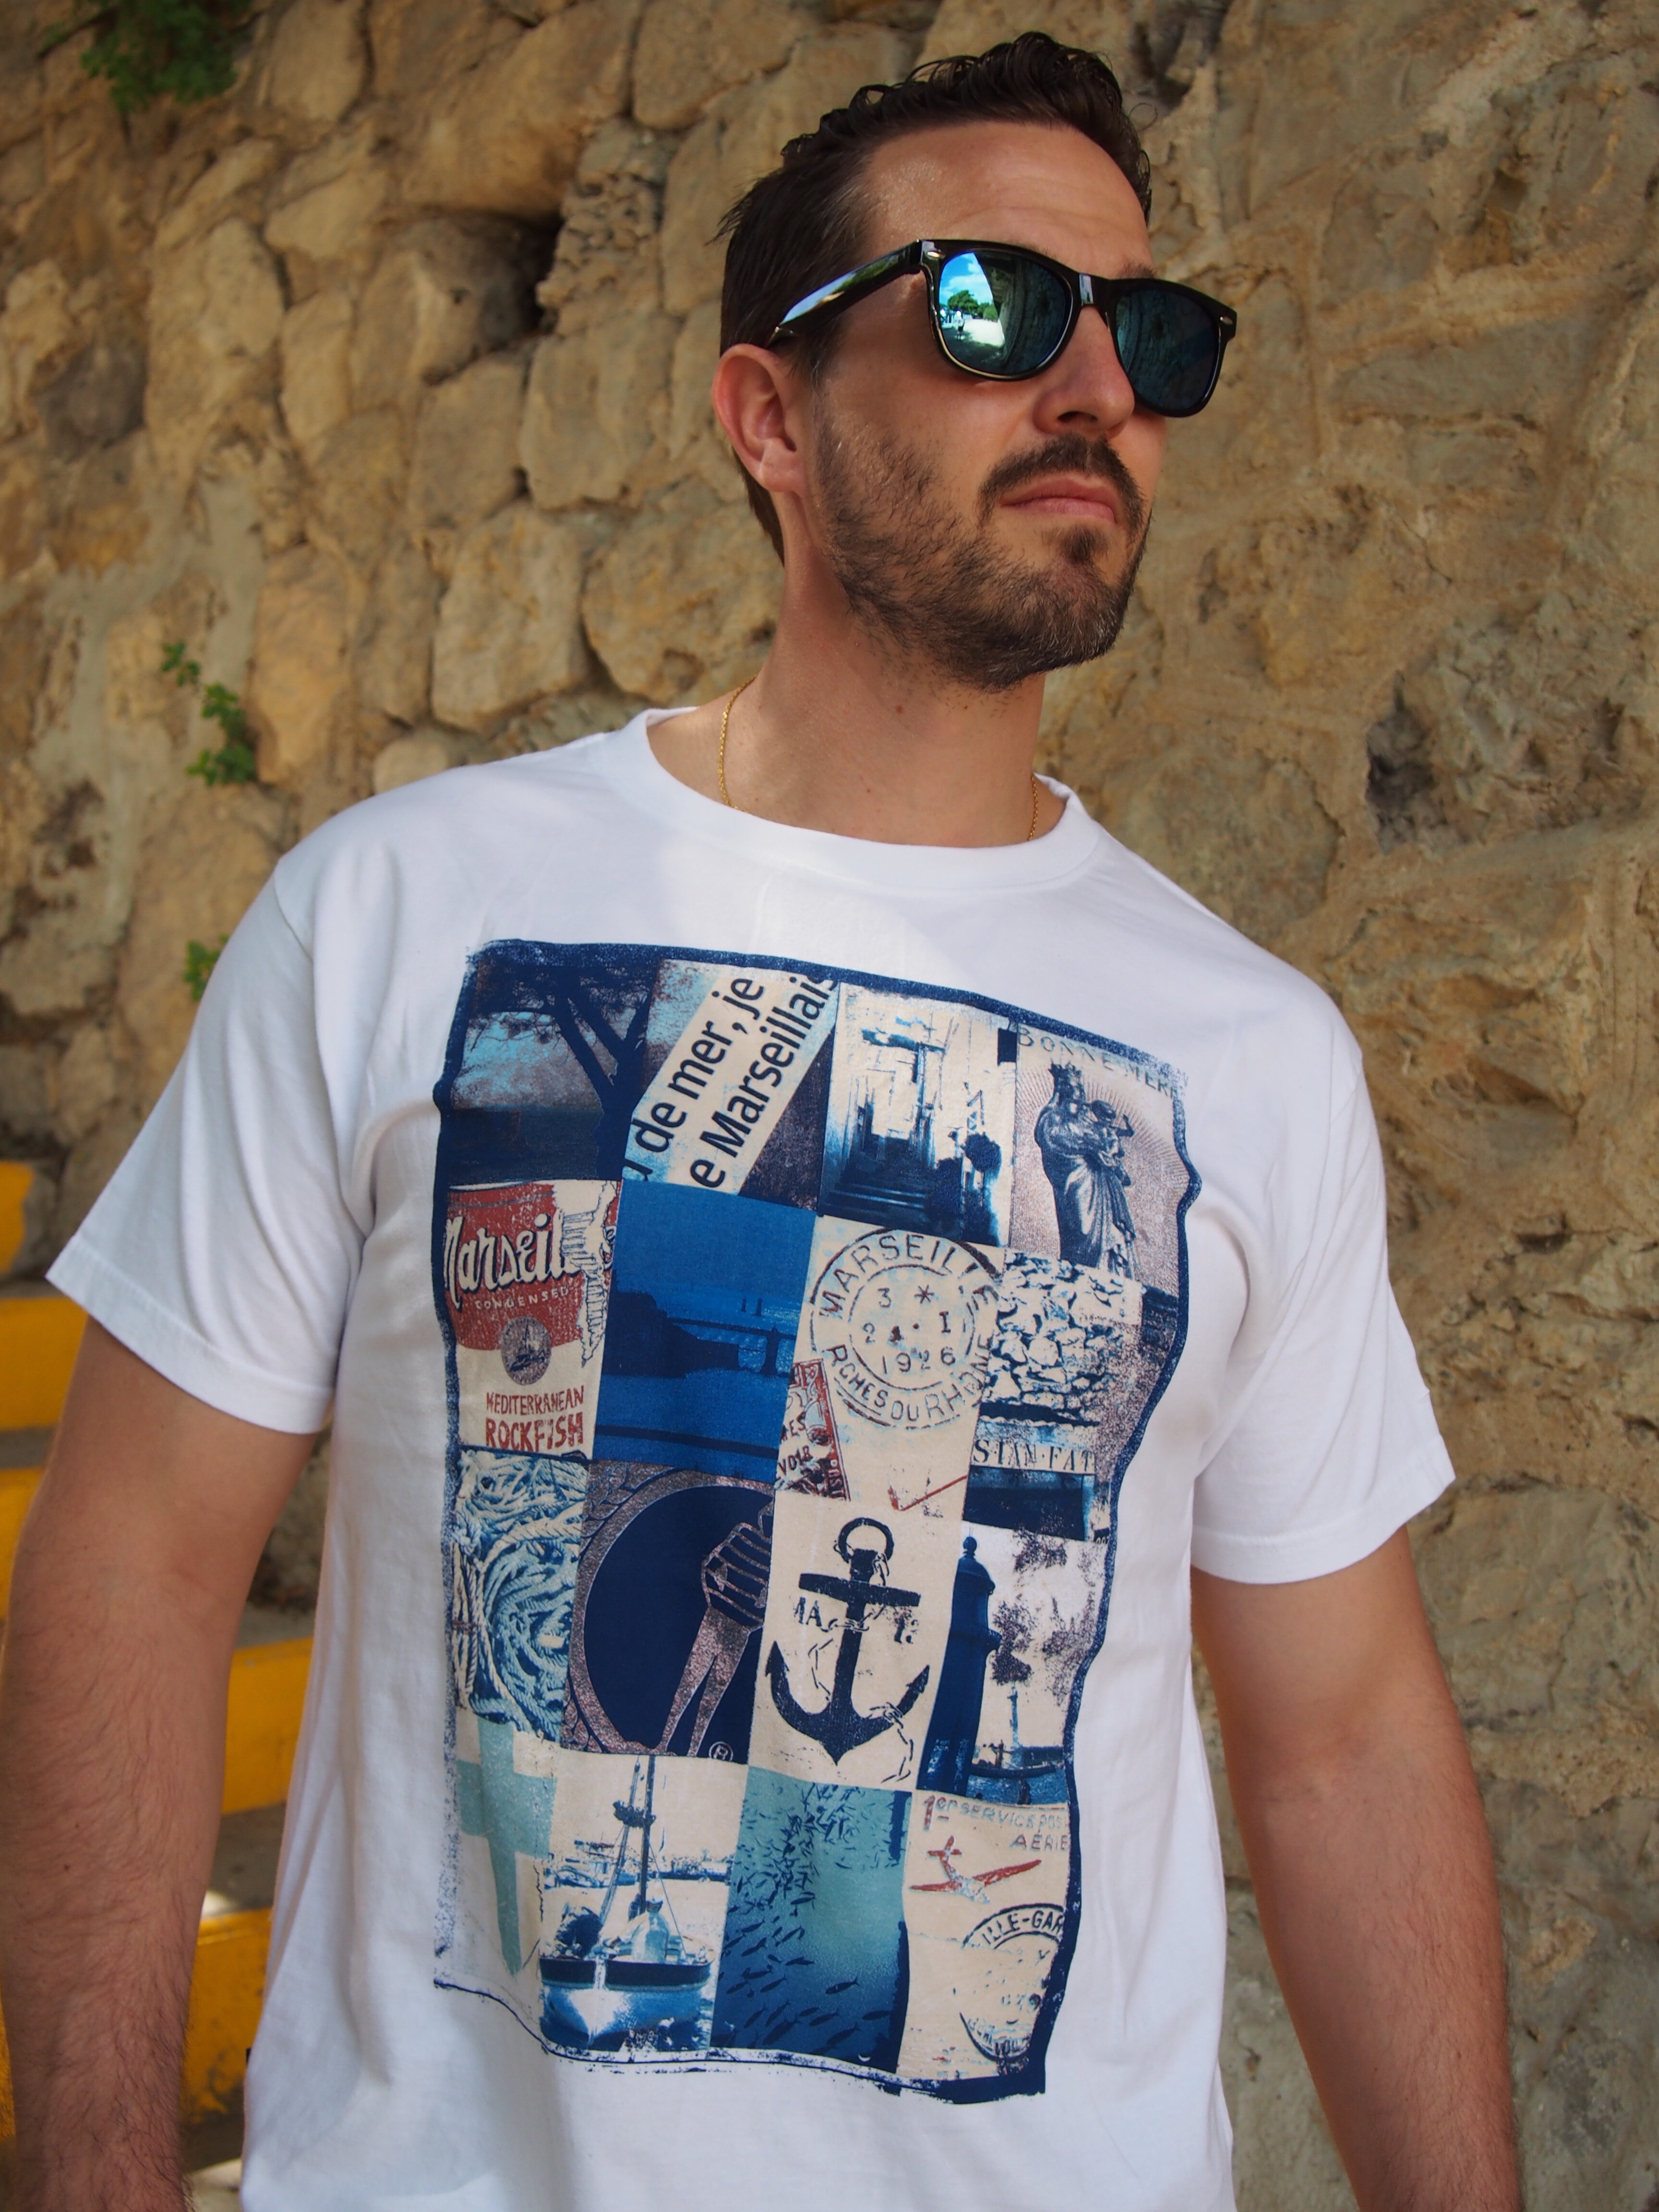 le-marseillais-je-viens-du-sud-adidas-stan-smith-look-marseille-soprettylittlethings